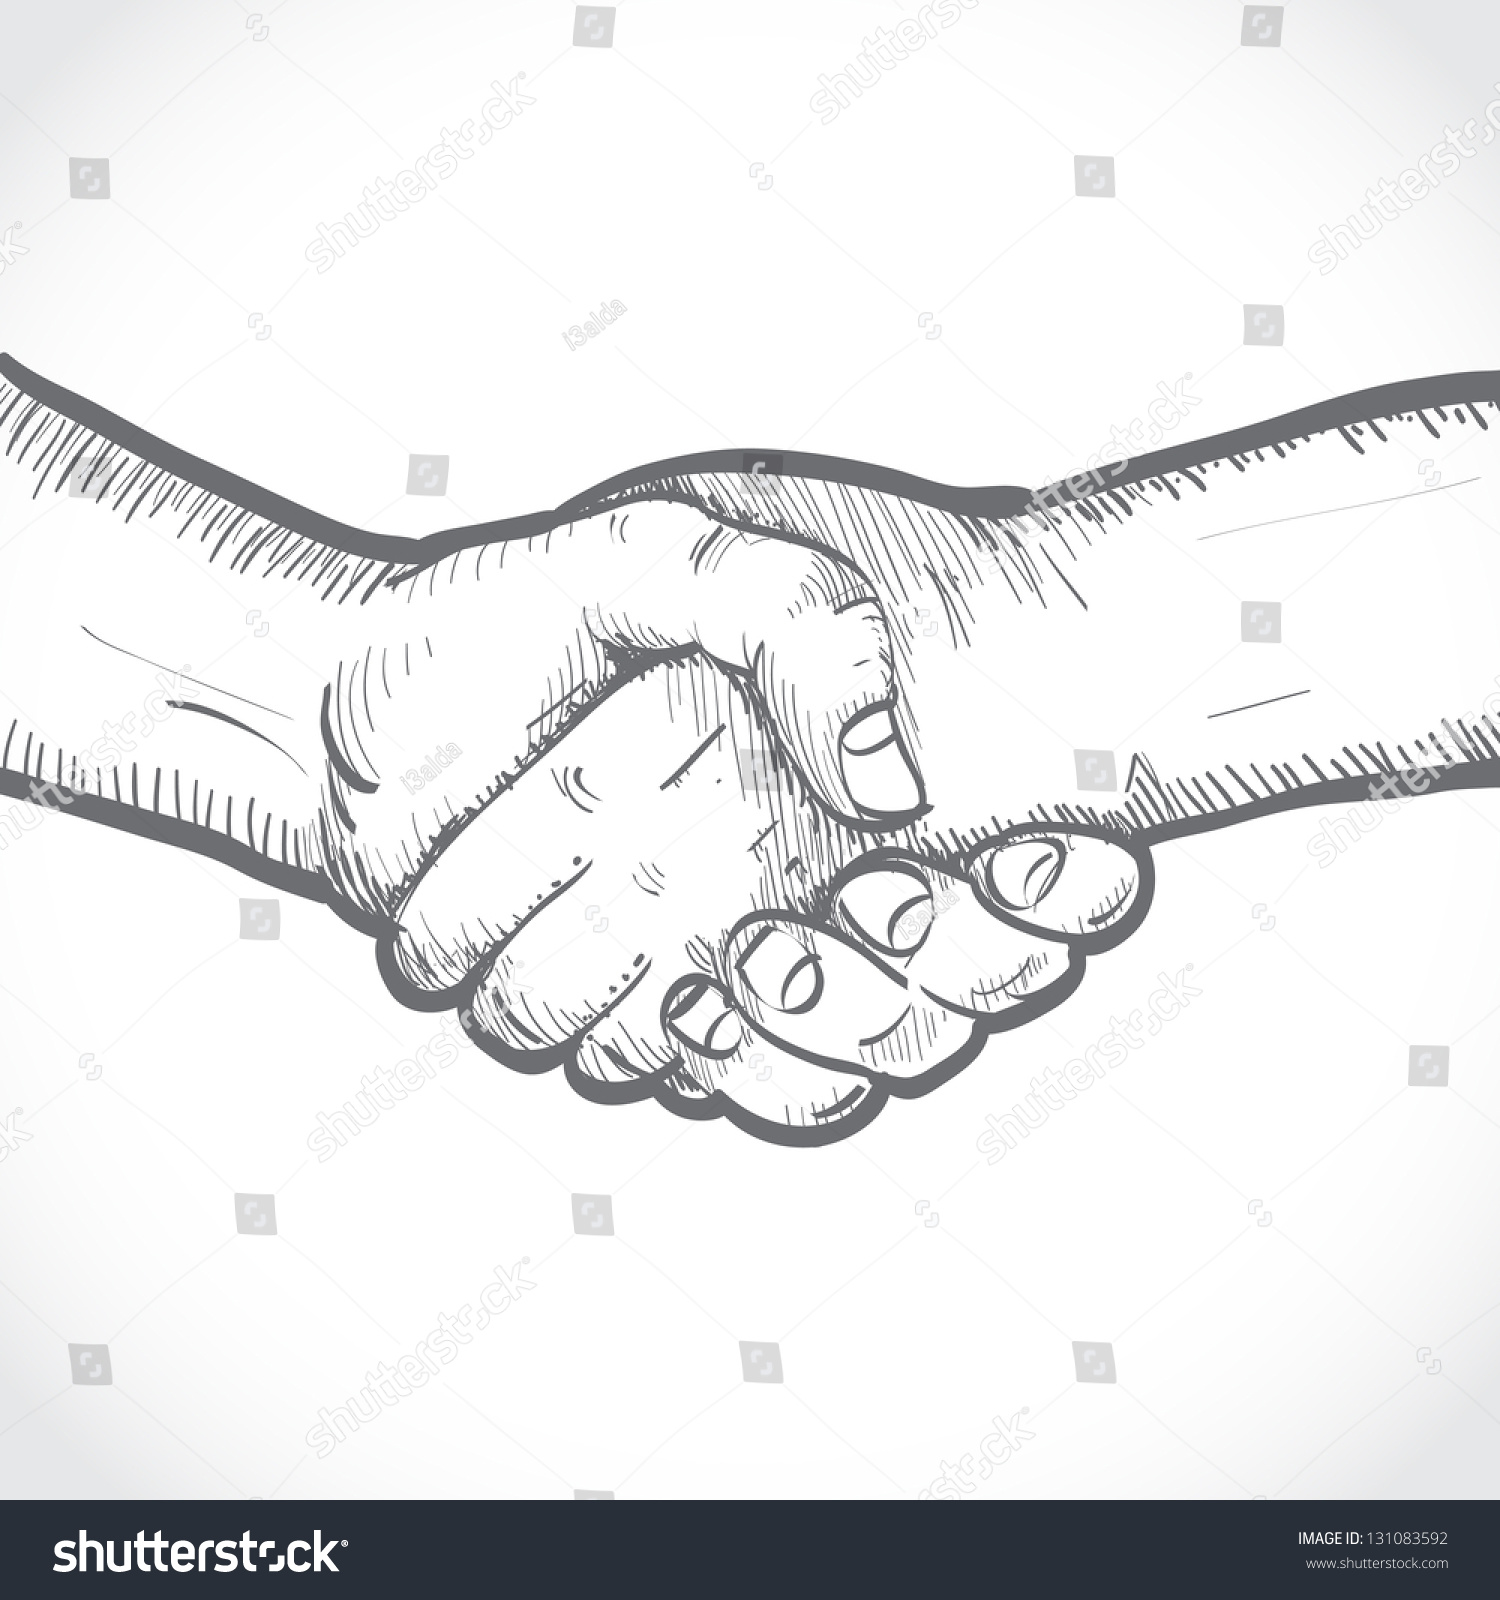 Sketch Of Two Shaking Hands Stock Vector Illustration ...